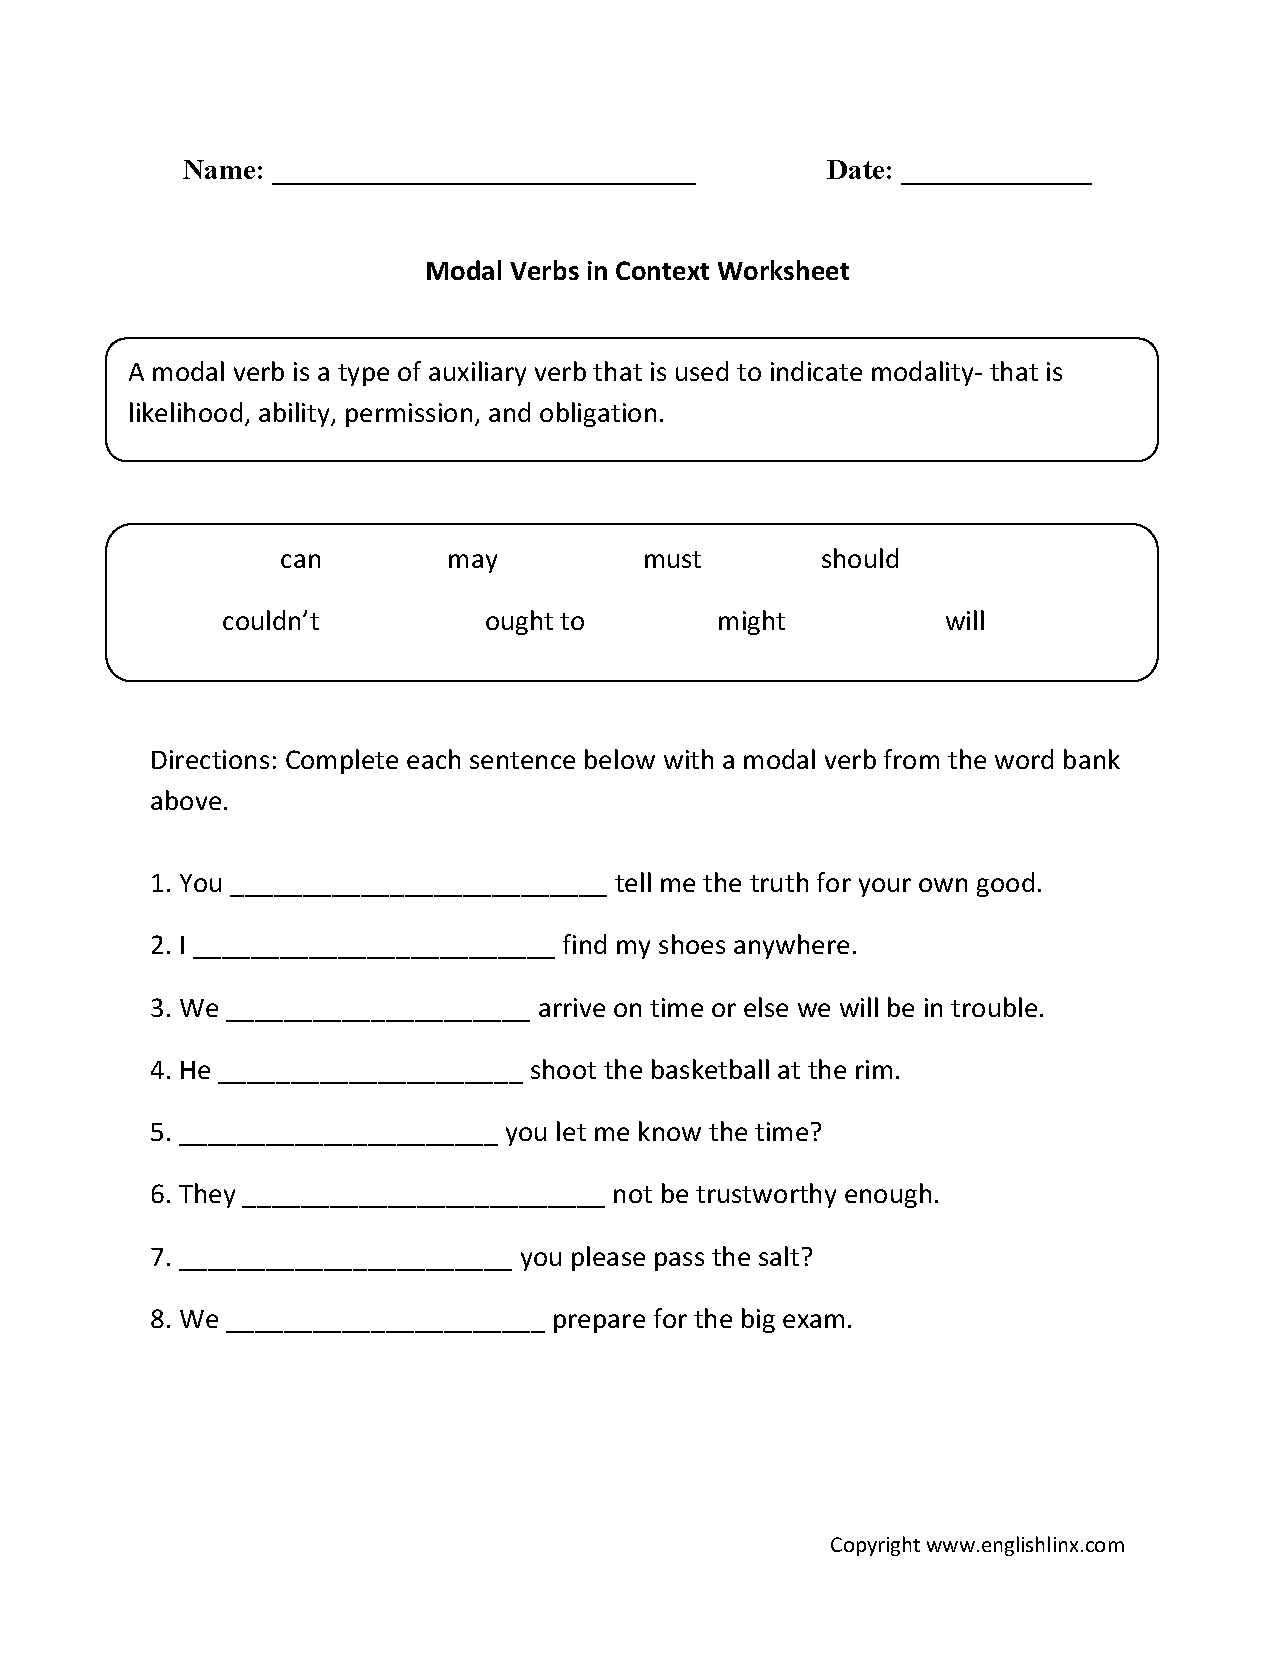 Worksheets Verb Worksheets 5th Grade englishlinx com verbs worksheets modal worksheets